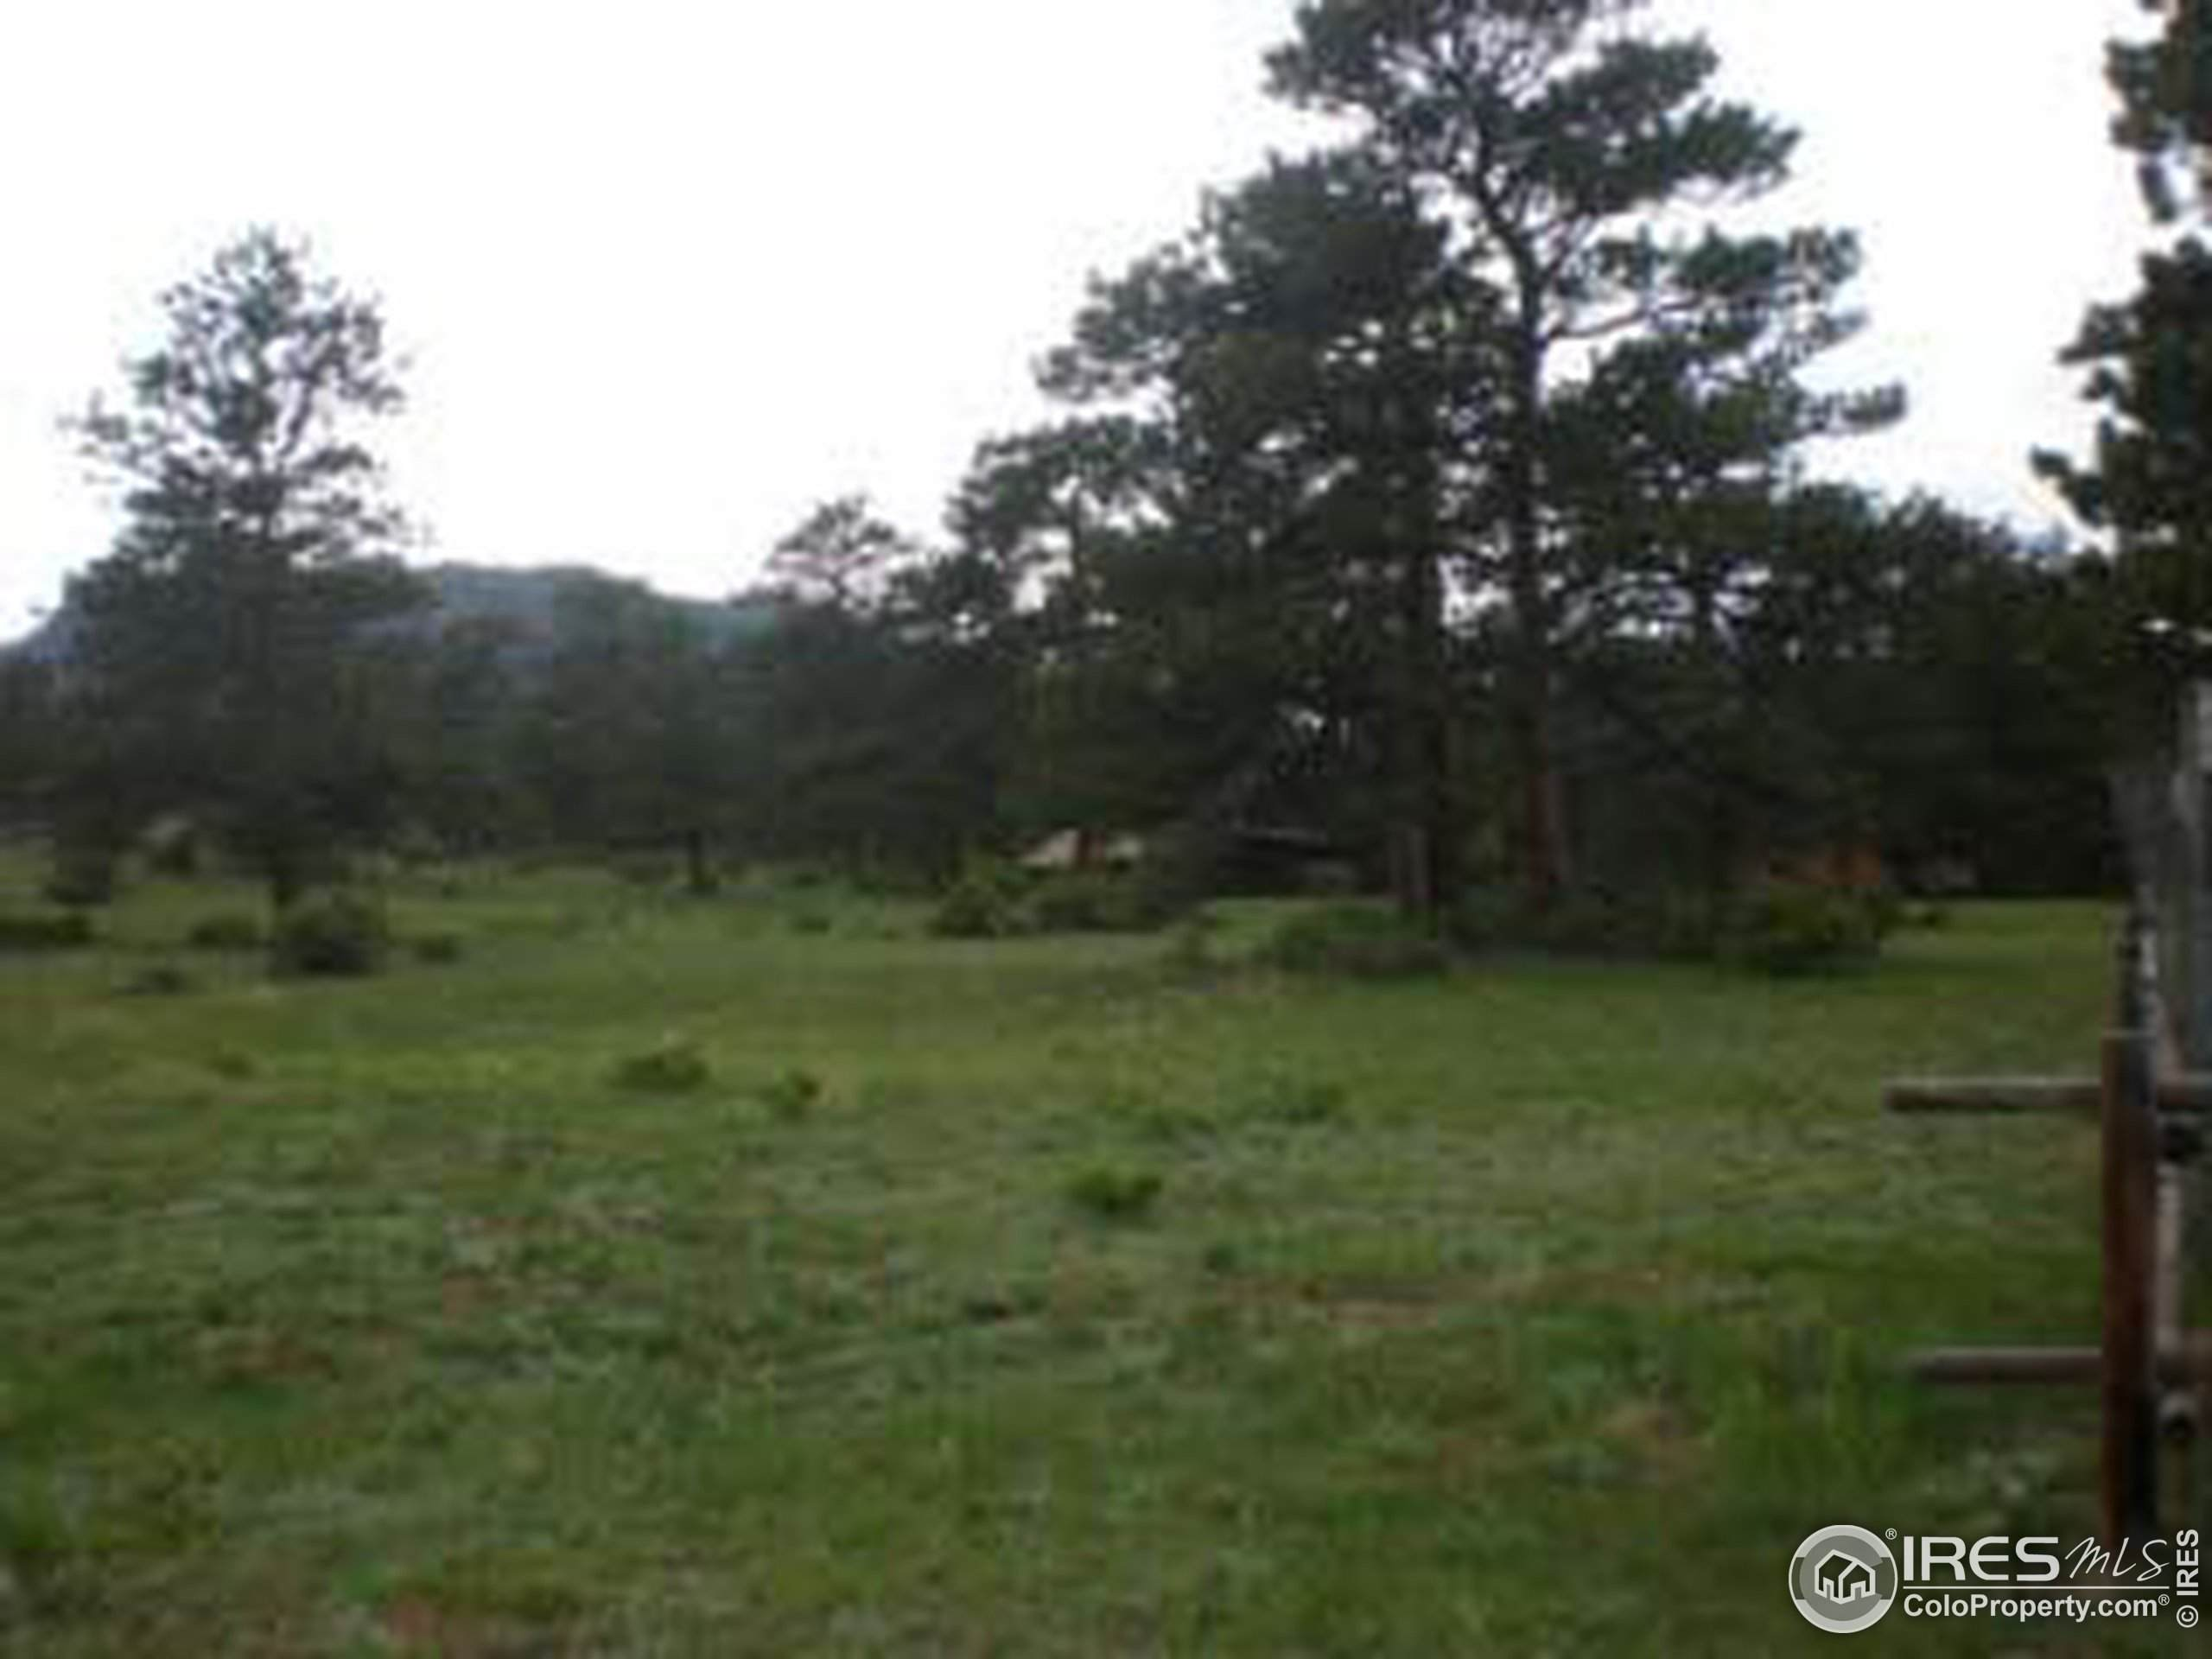 11715 Swadley Dr, Lakewood, CO 80215 (MLS #900502) :: 8z Real Estate